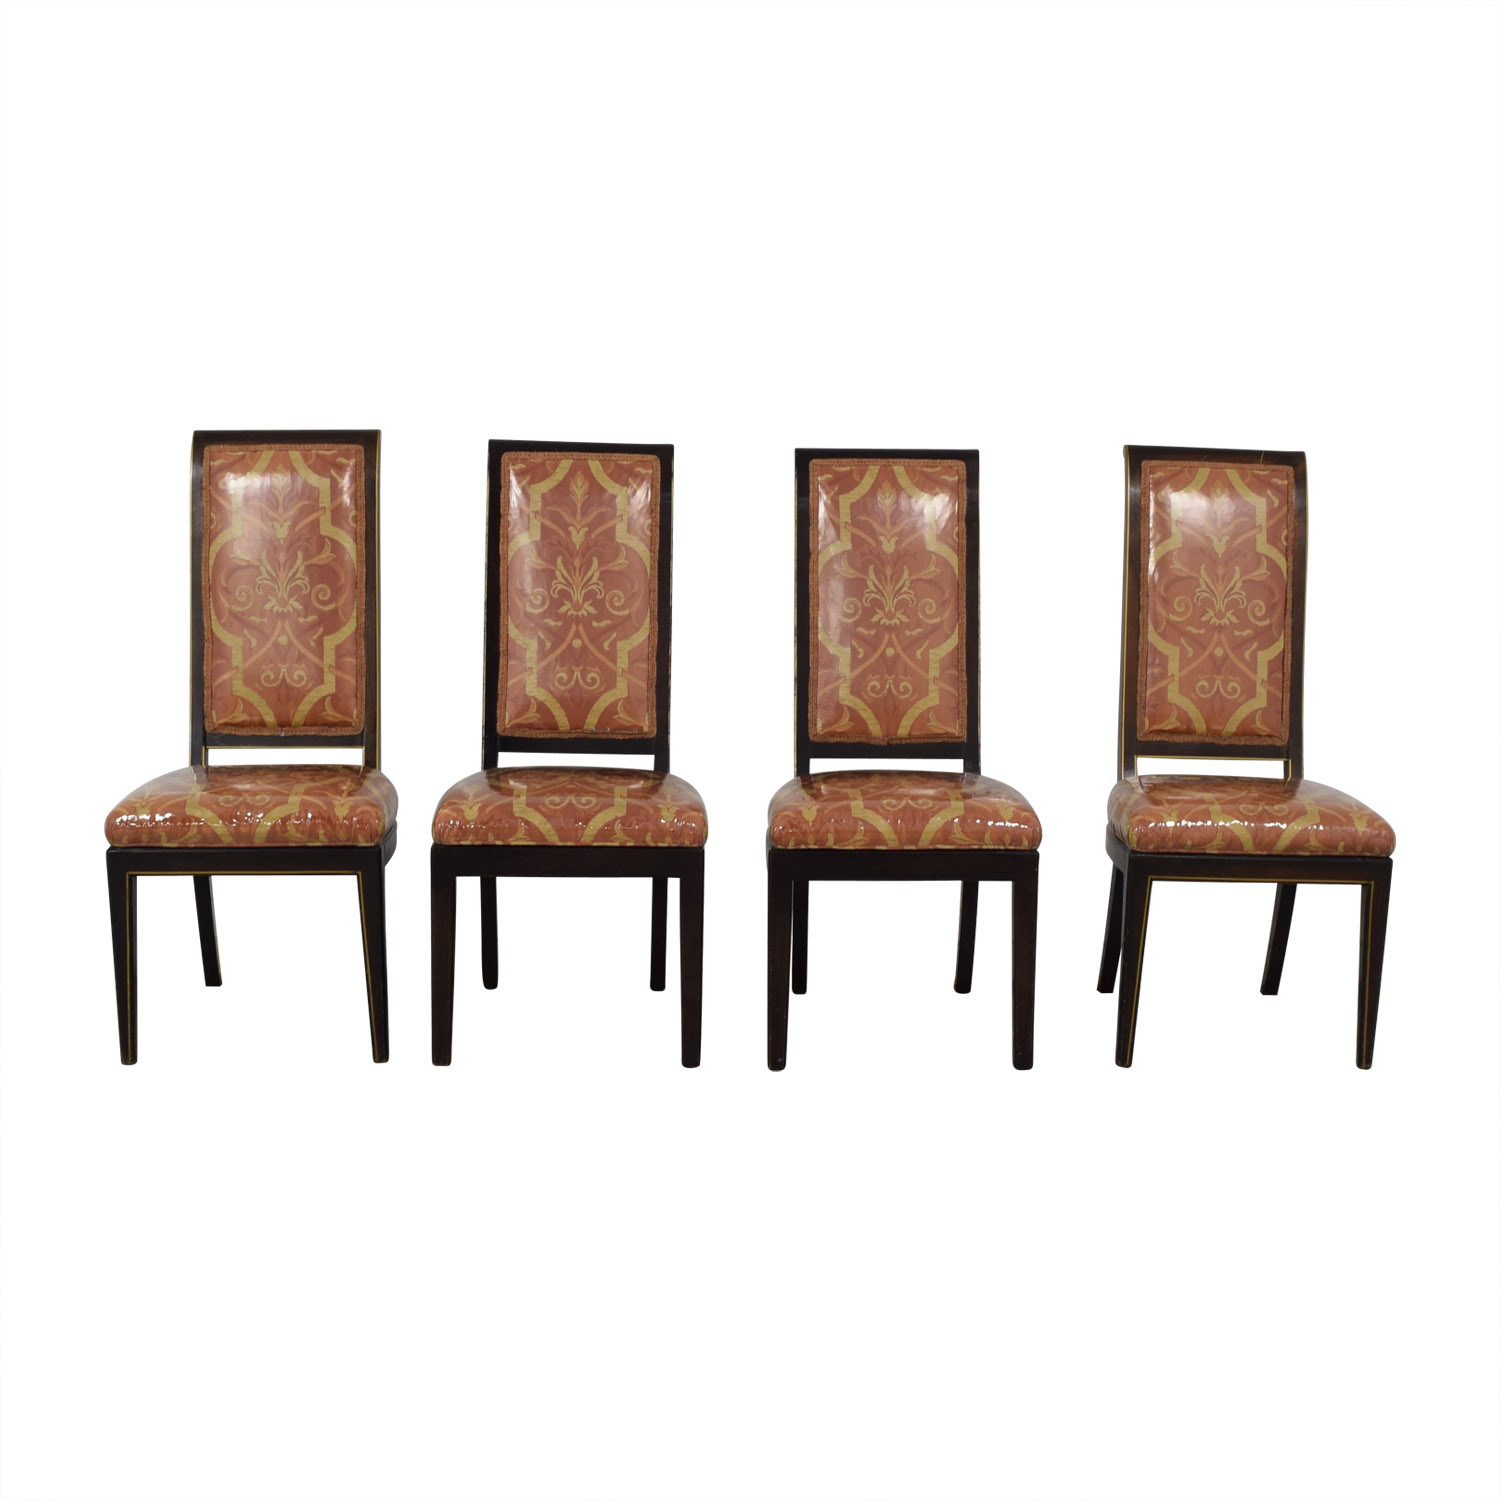 Fabric Dining Chairs price